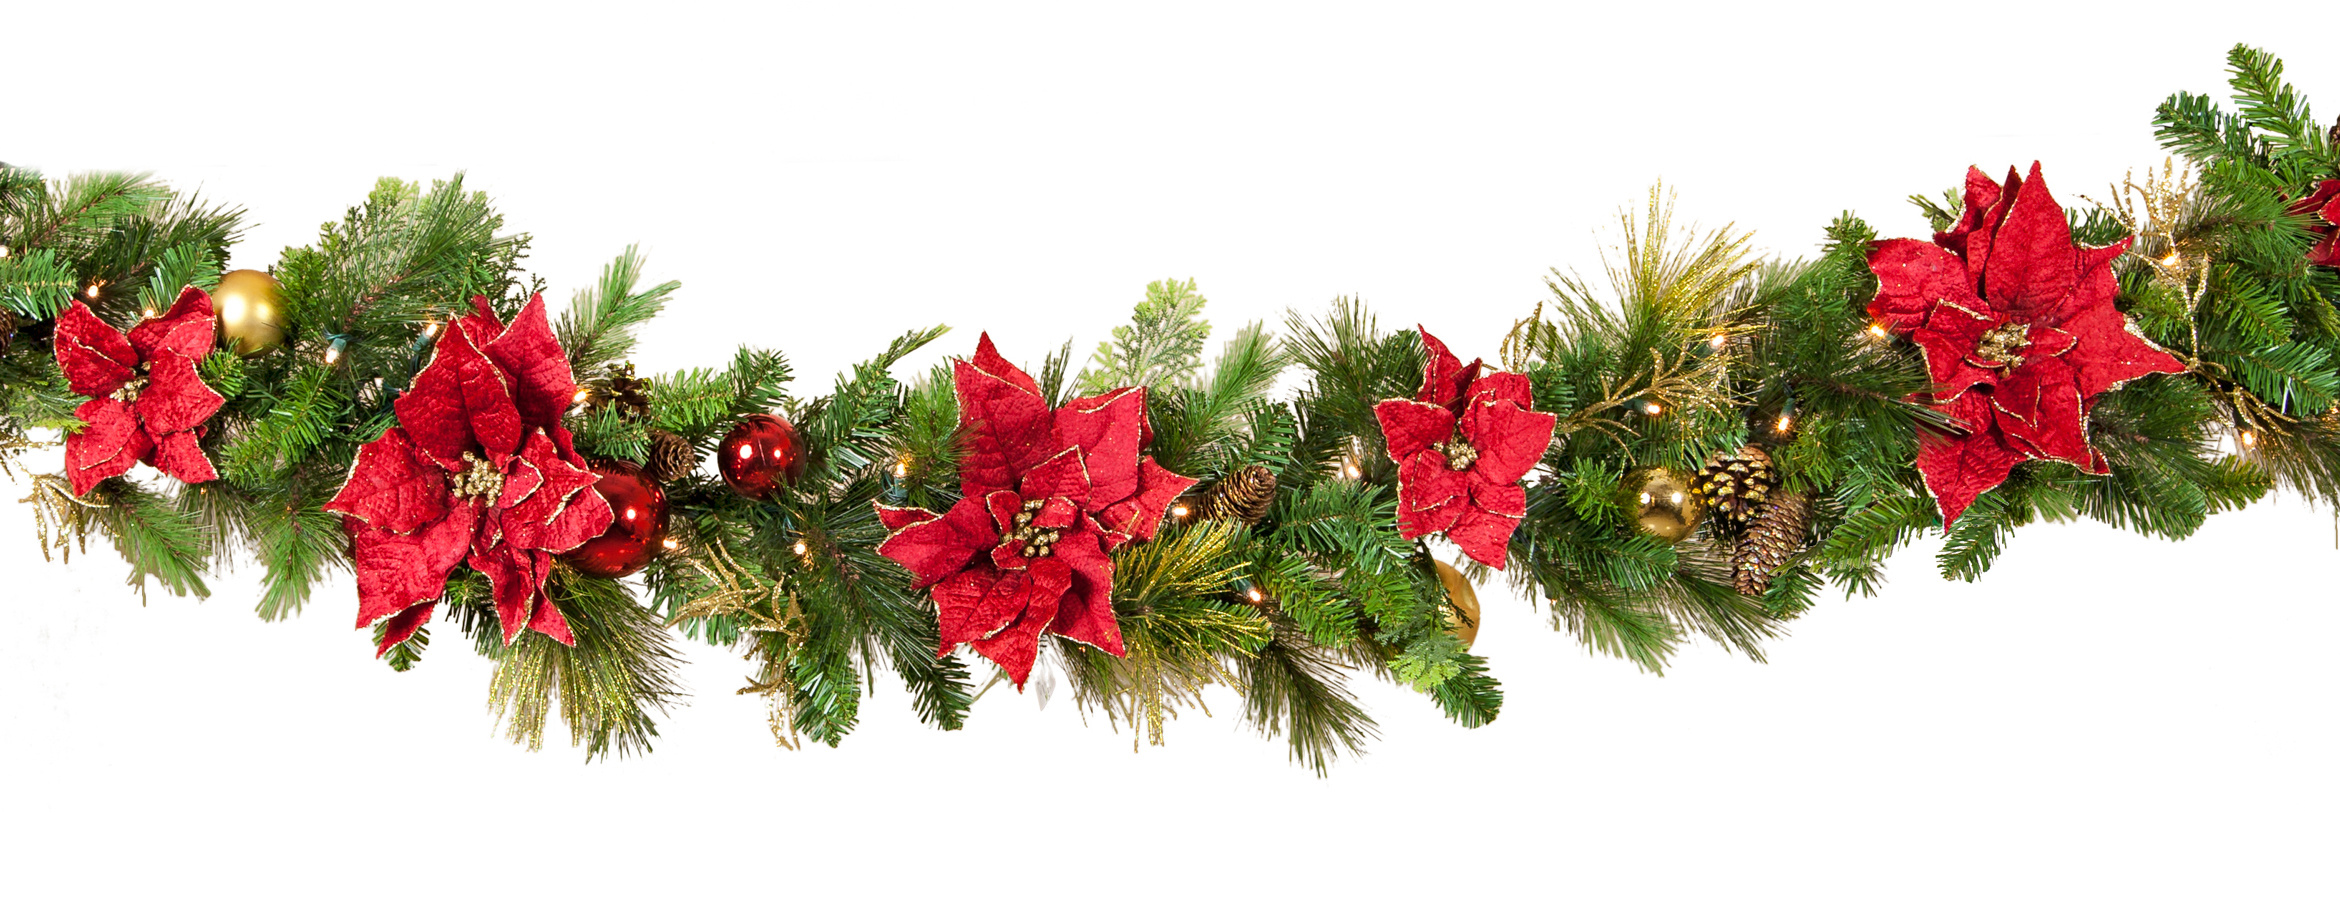 Printable Home Decor Christmas Garland Wallpapers High Quality Download Free